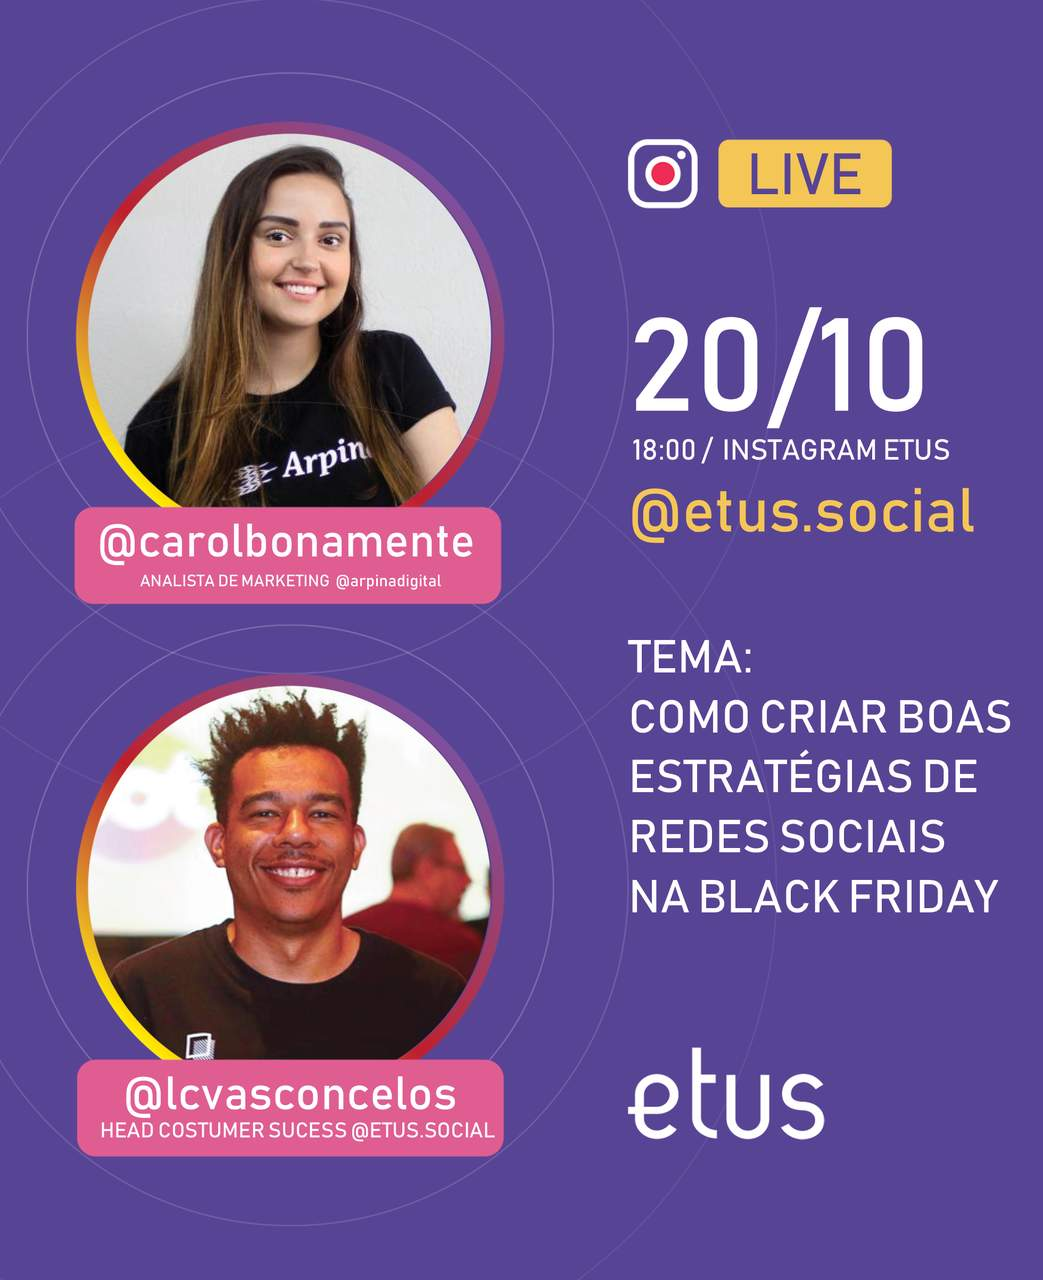 Live dia 20 no instagram da Etus sobre Black Friday, as 18 horas.